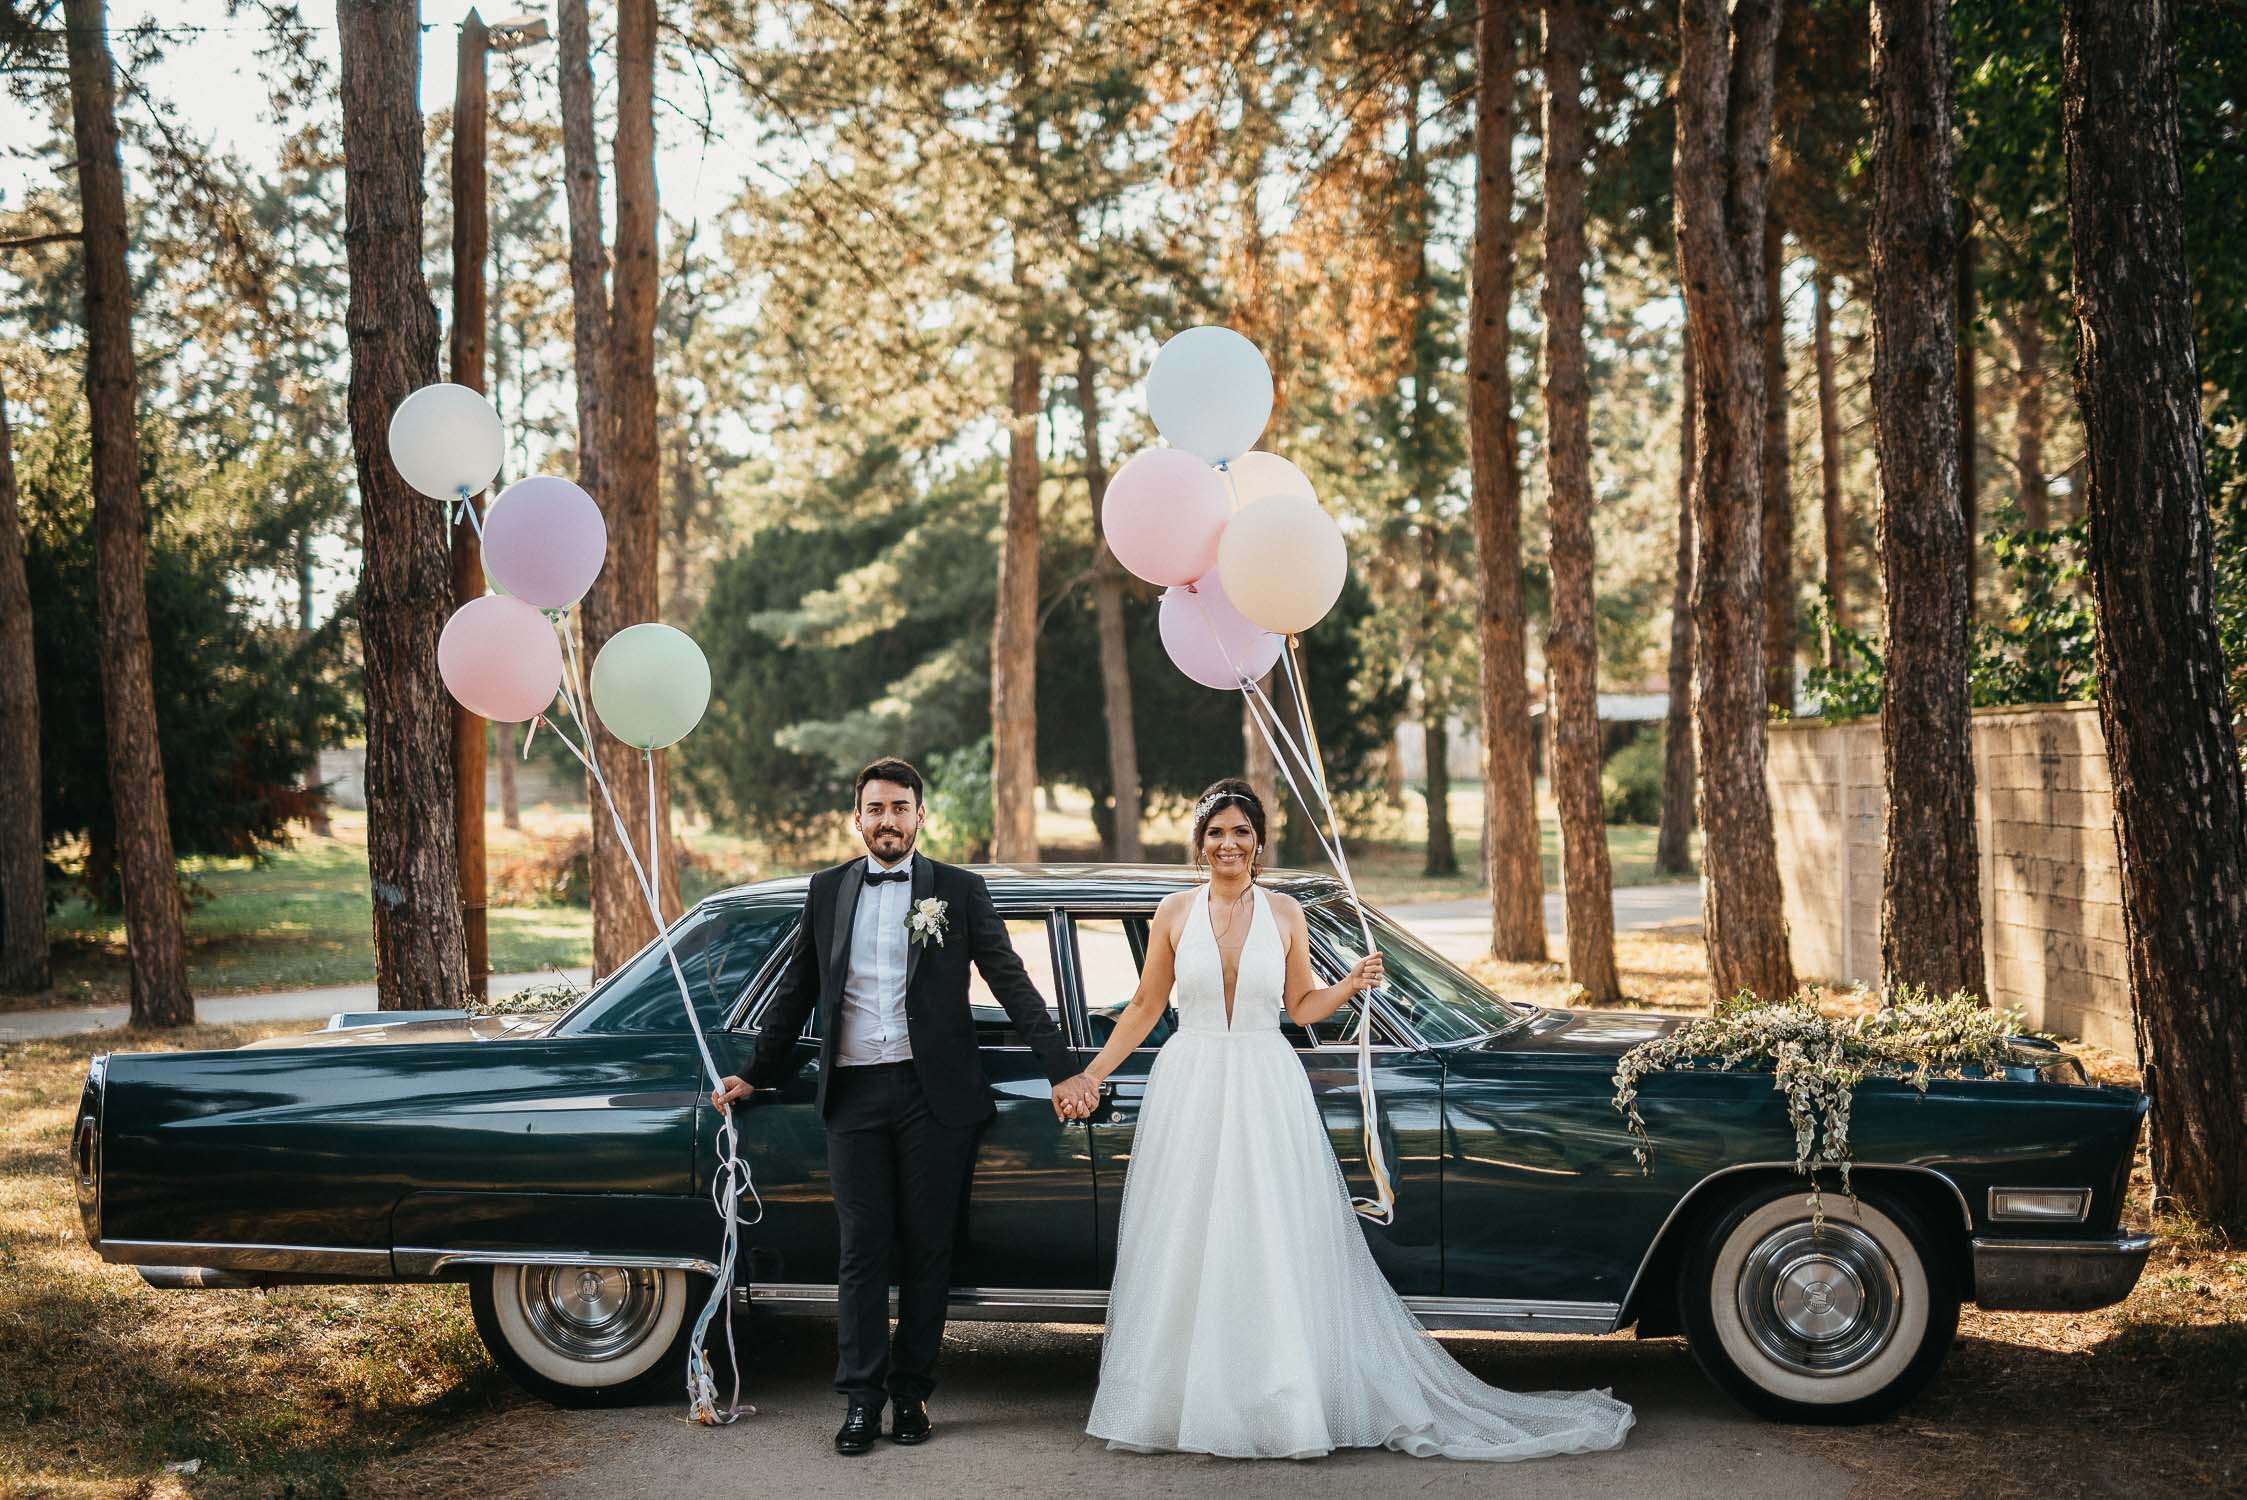 bride and groom posing with balloons